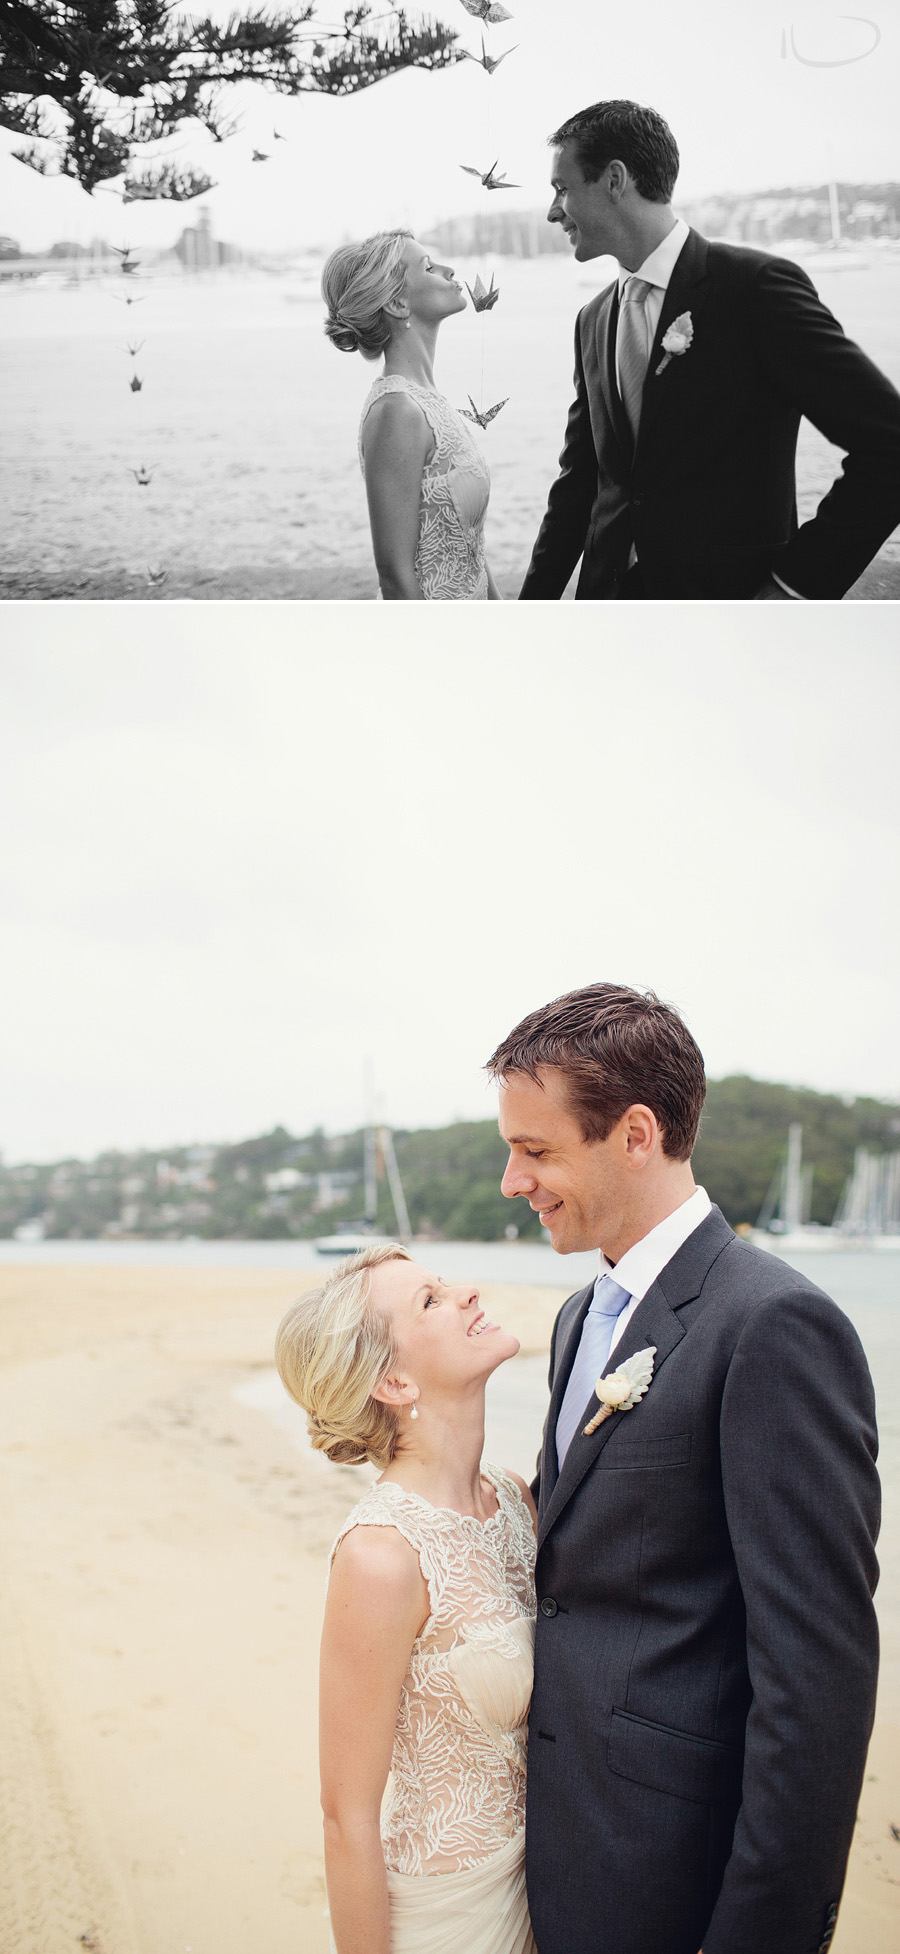 Northern Beaches Wedding Photographers: Bride & Groom portraits at Clontarf